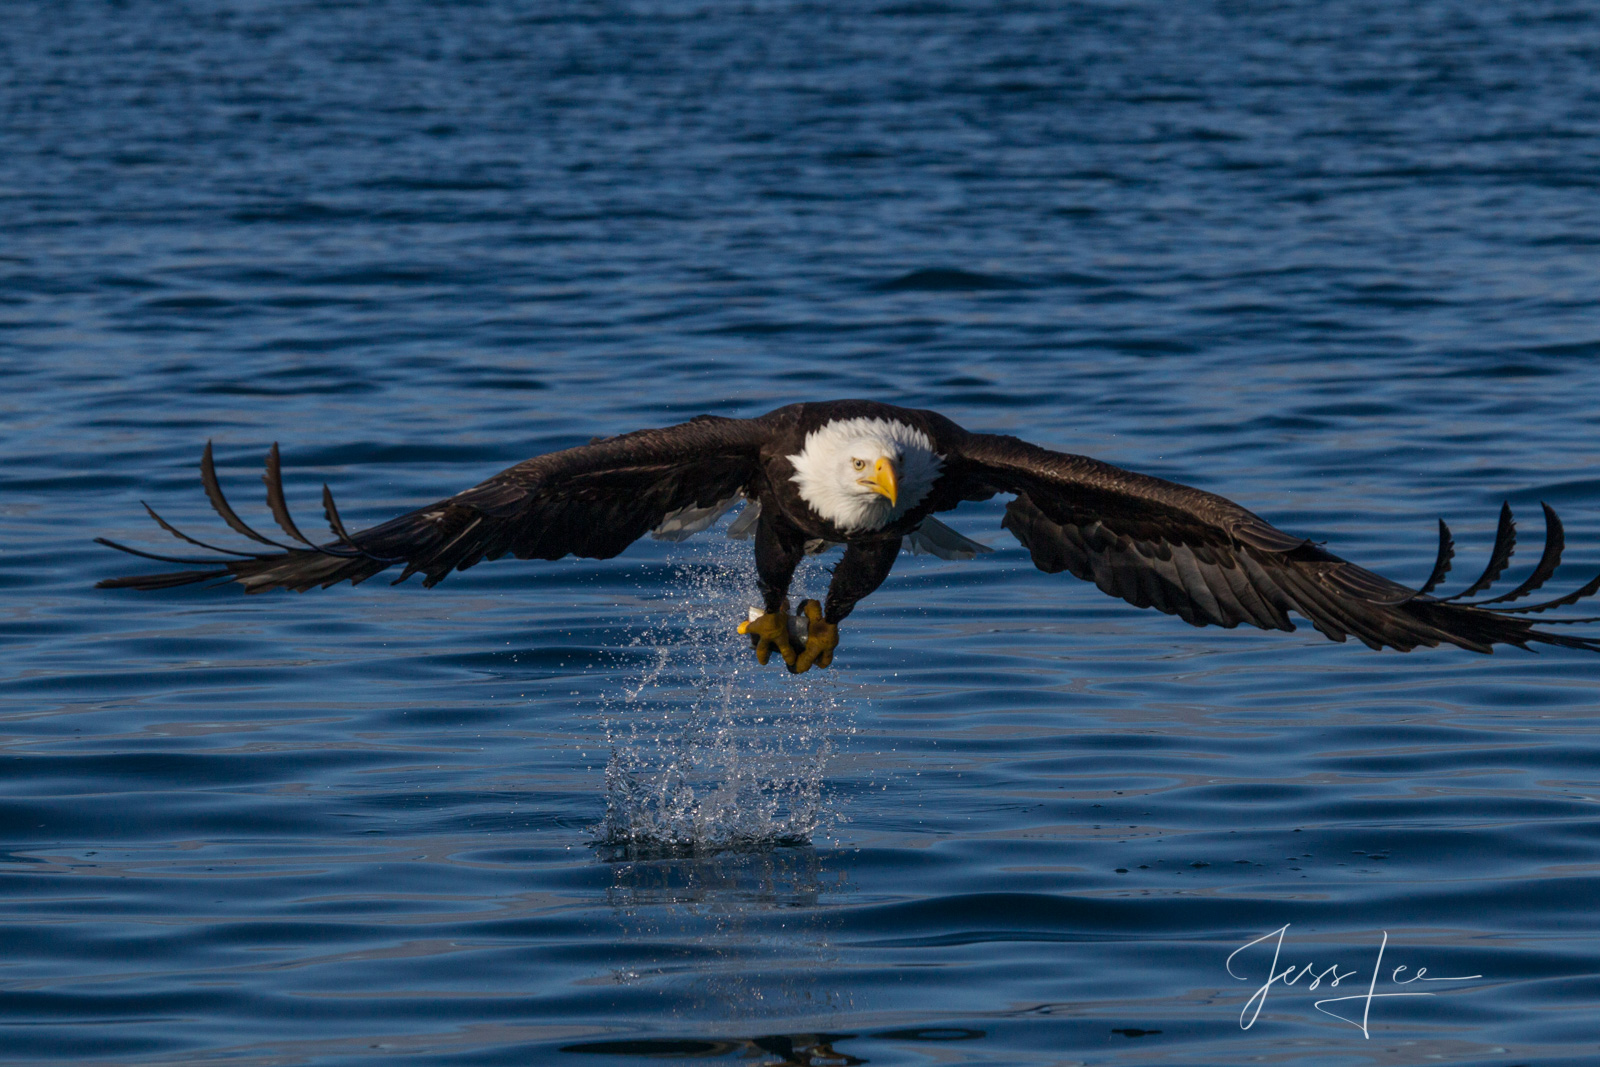 Bring home the power and beauty of the amazing fine art American Bald Eagle photograph Glidepath by Jess Lee from his Wildlife...